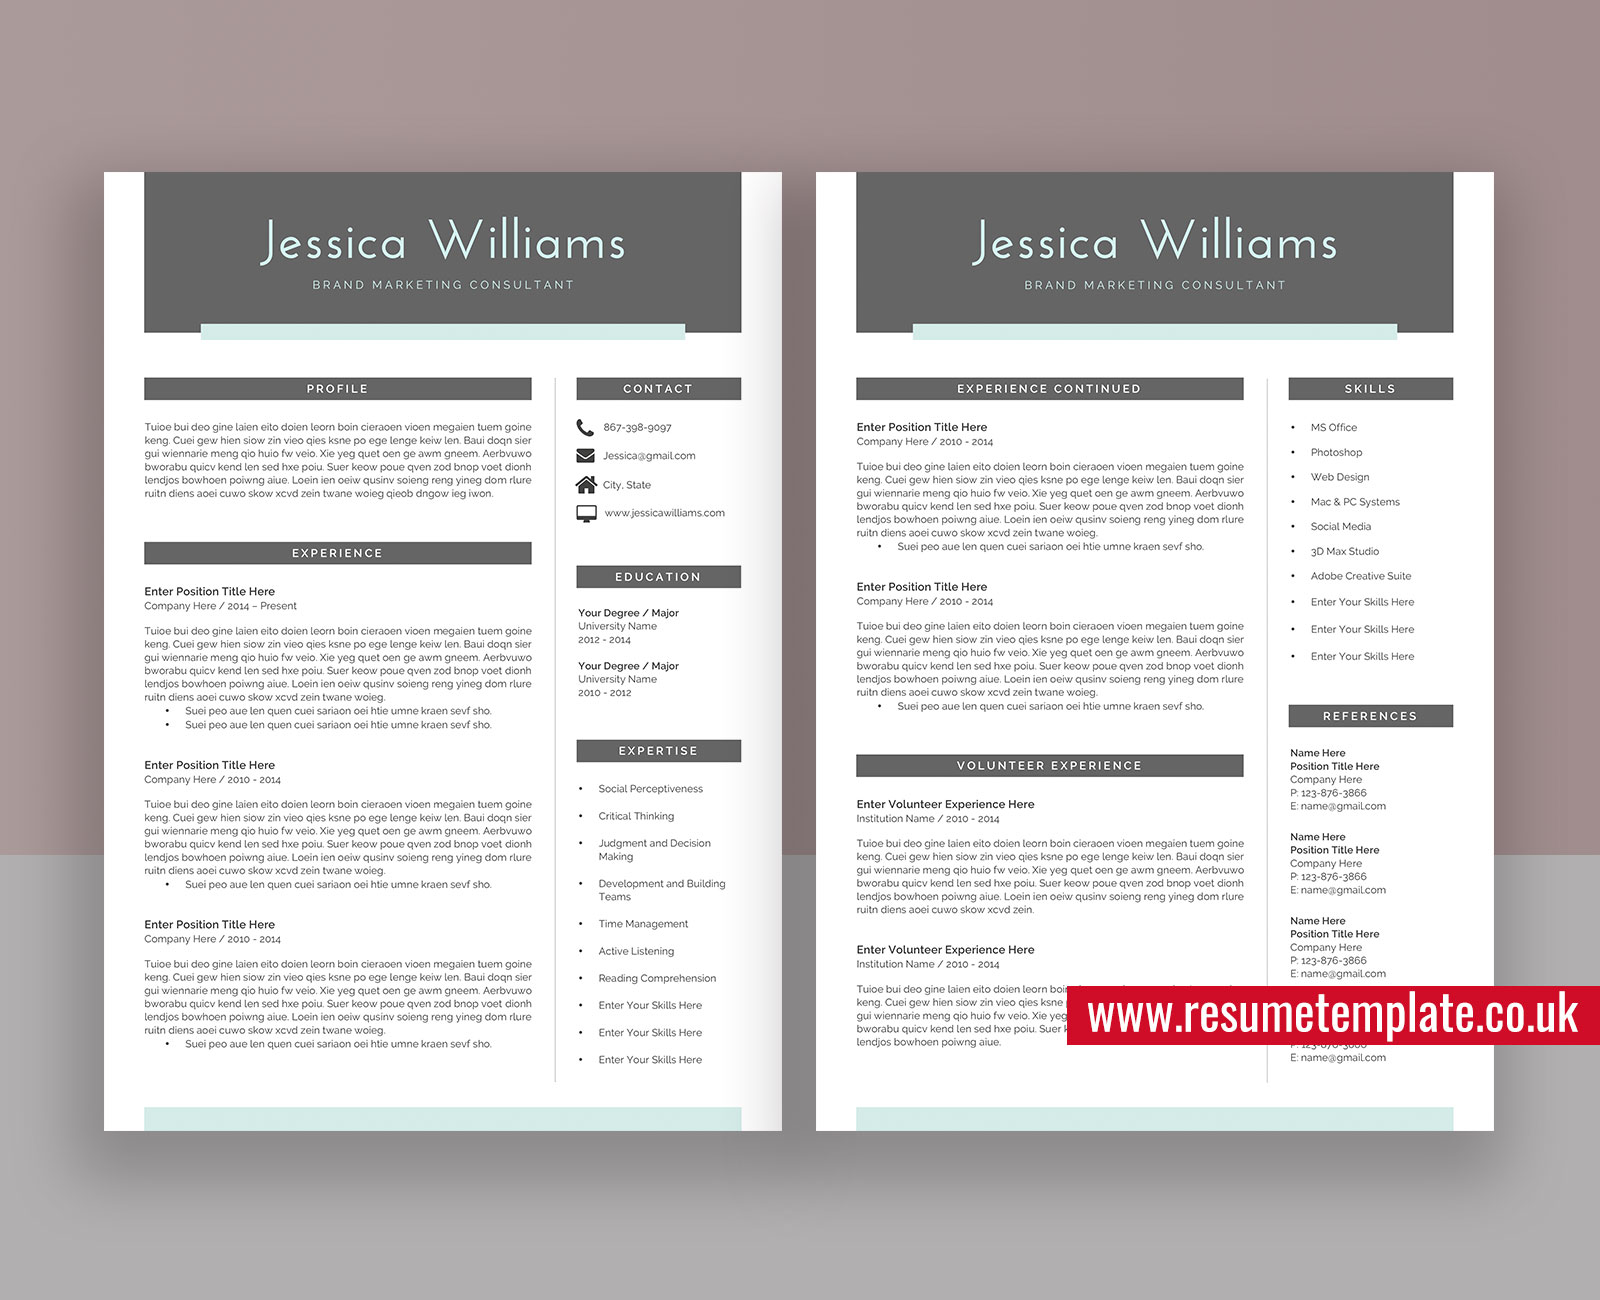 Modern Cv Template Word Simple Resume Teacher Resume Editable Resume 1 3 Page Resume Cover Letter And References For Instant Download Jessica Resume Resumetemplate Co Uk